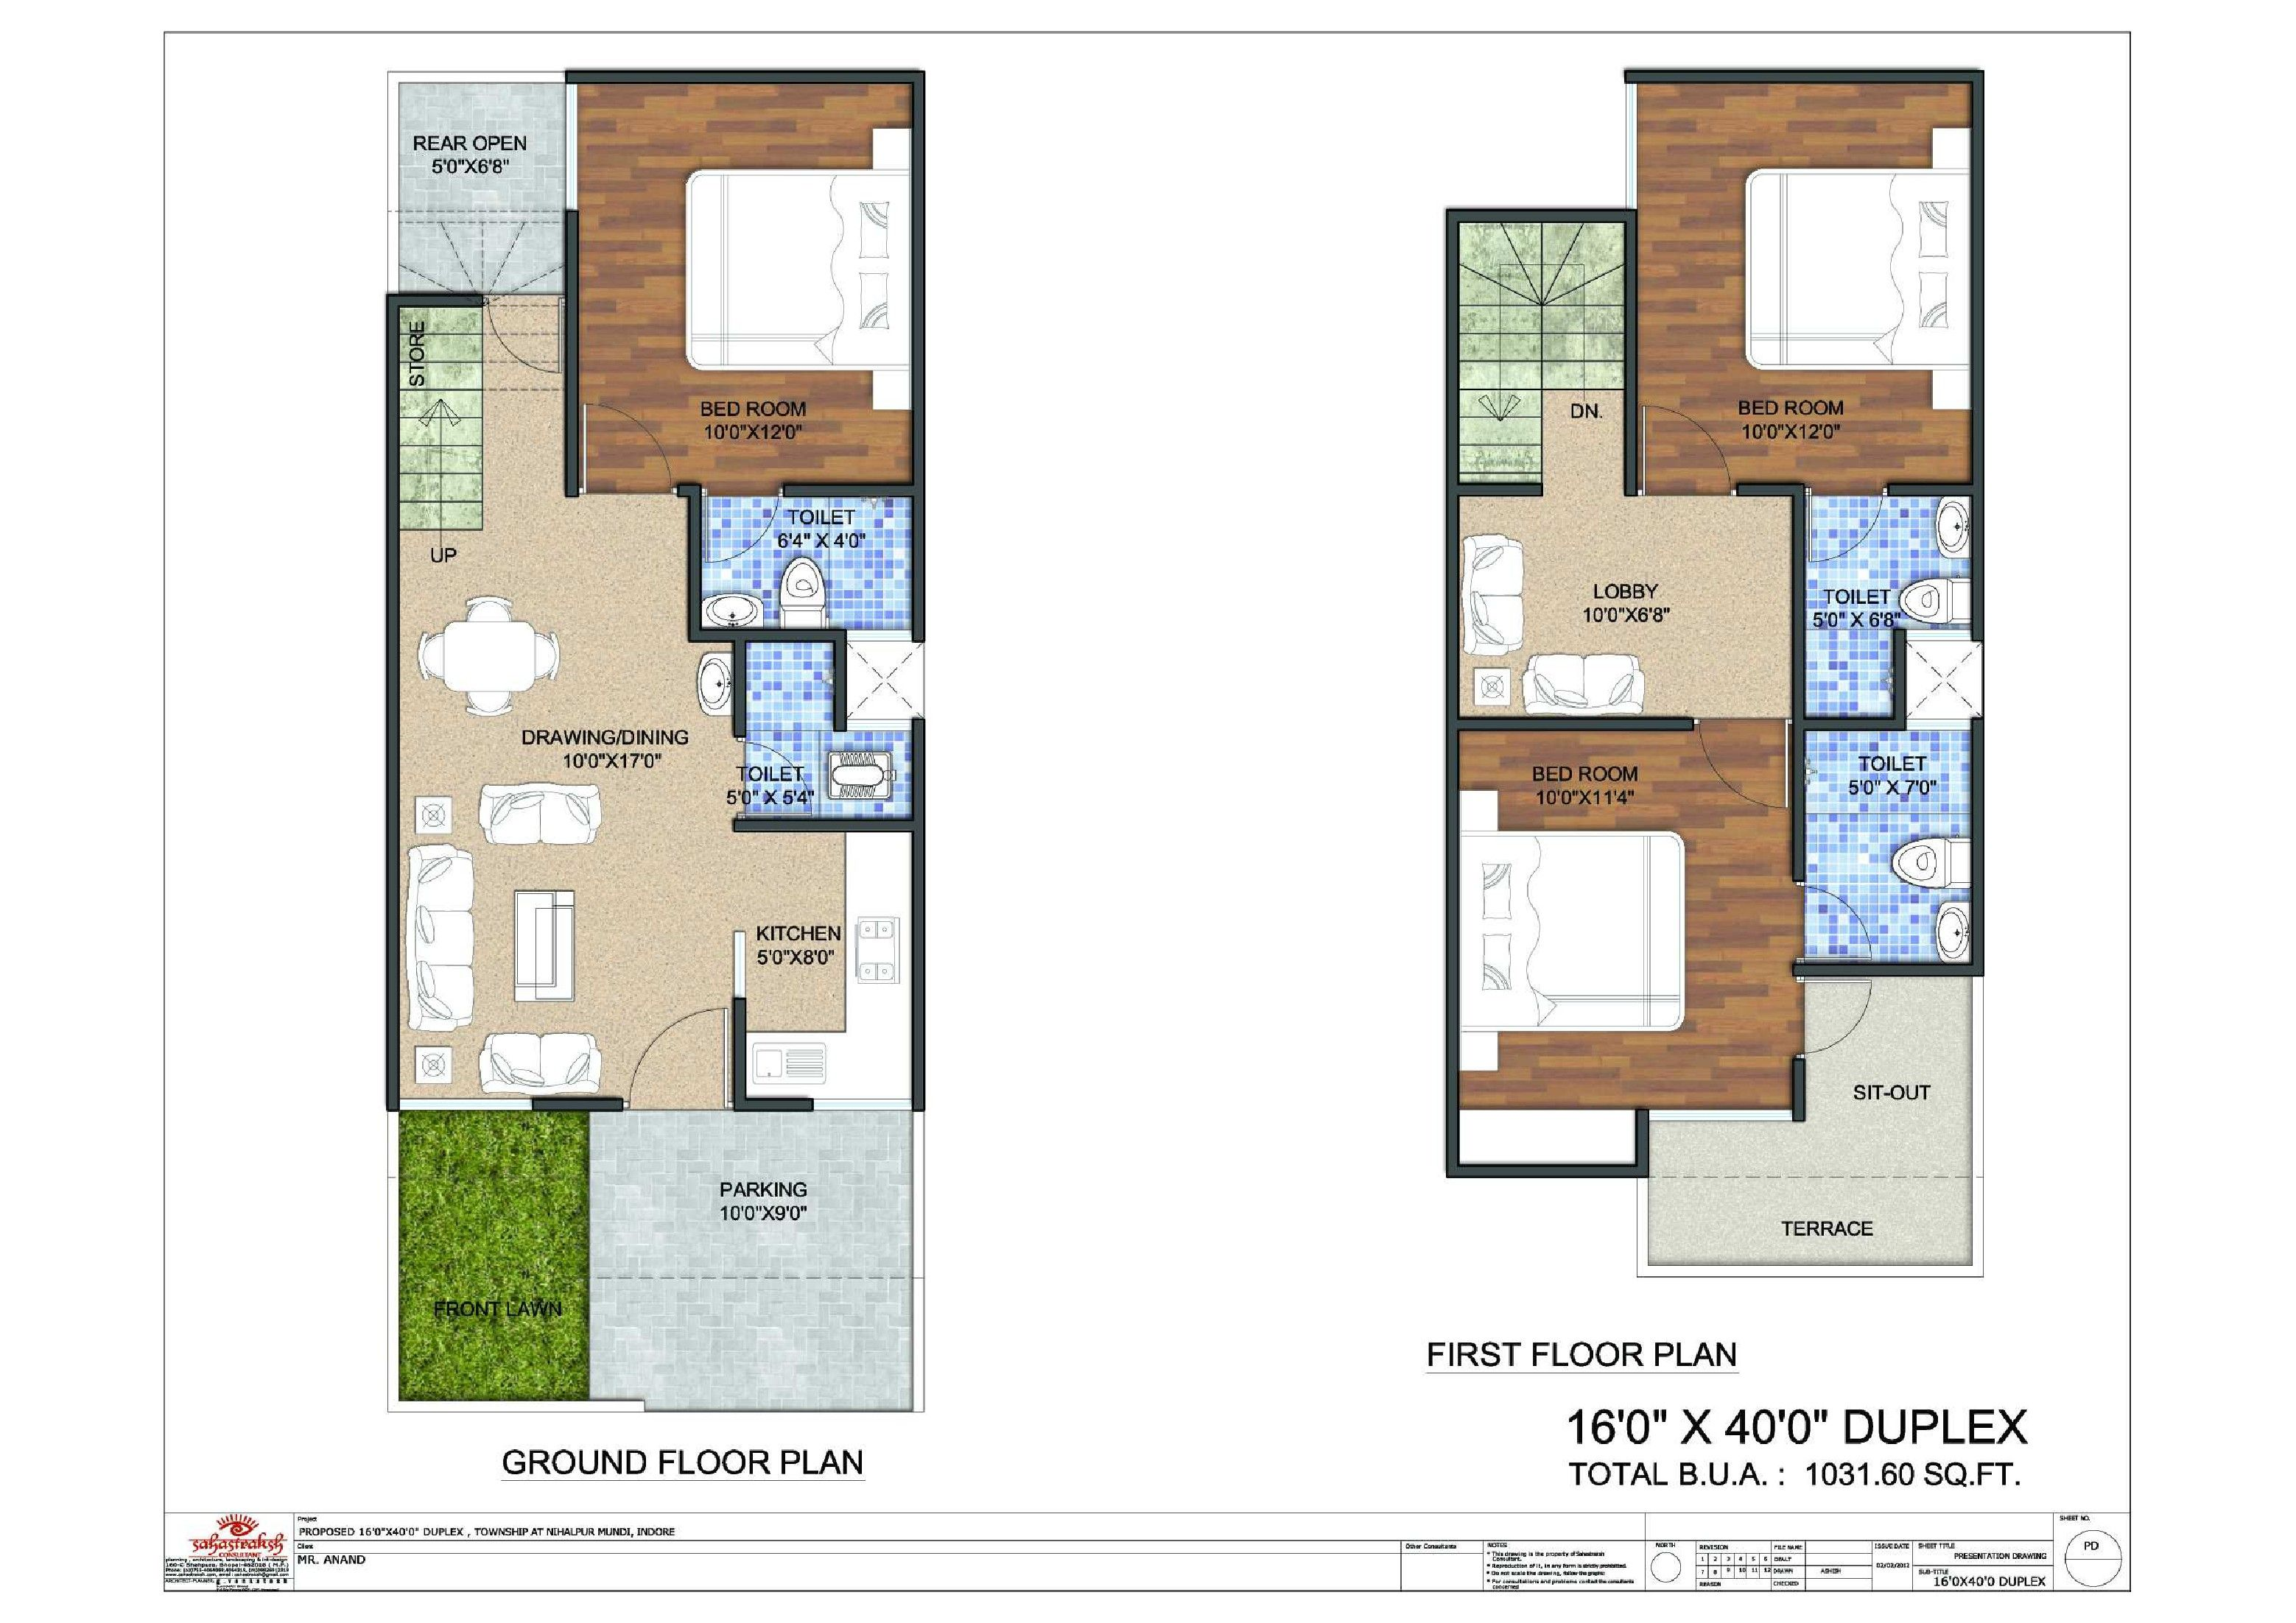 16x40 Duplex Floor Plan Http Www Nethomes In Duplex House Plans Duplex Floor Plans Floor Plans